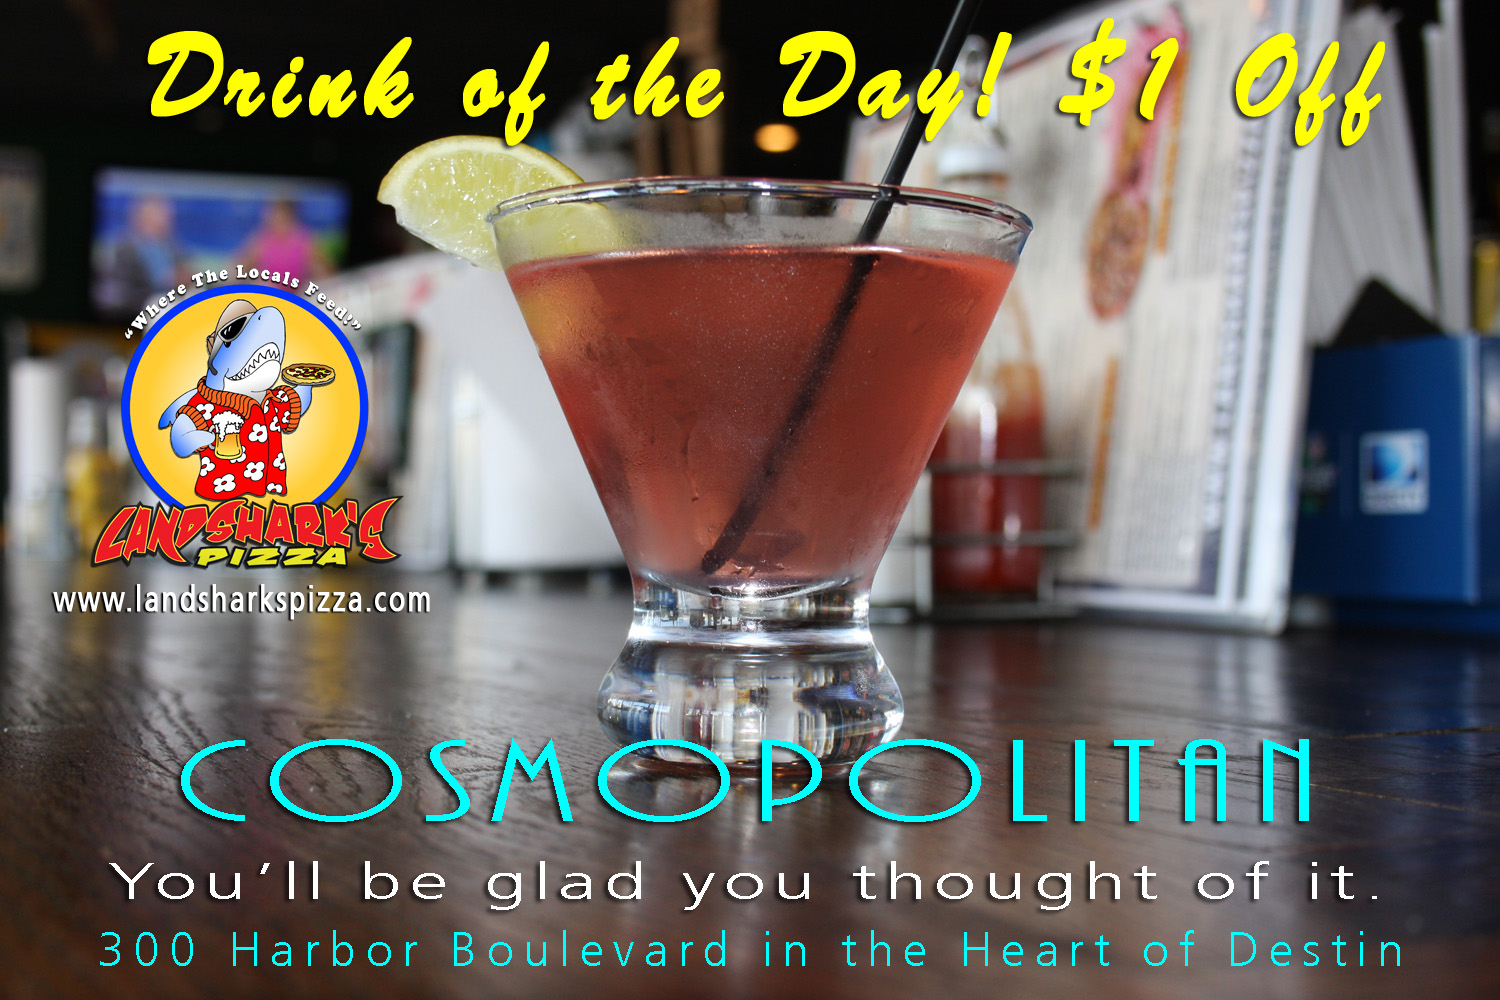 destin-fl-cocktails-cosmopolitan-at-landsharks-pizza-co-09-09-16